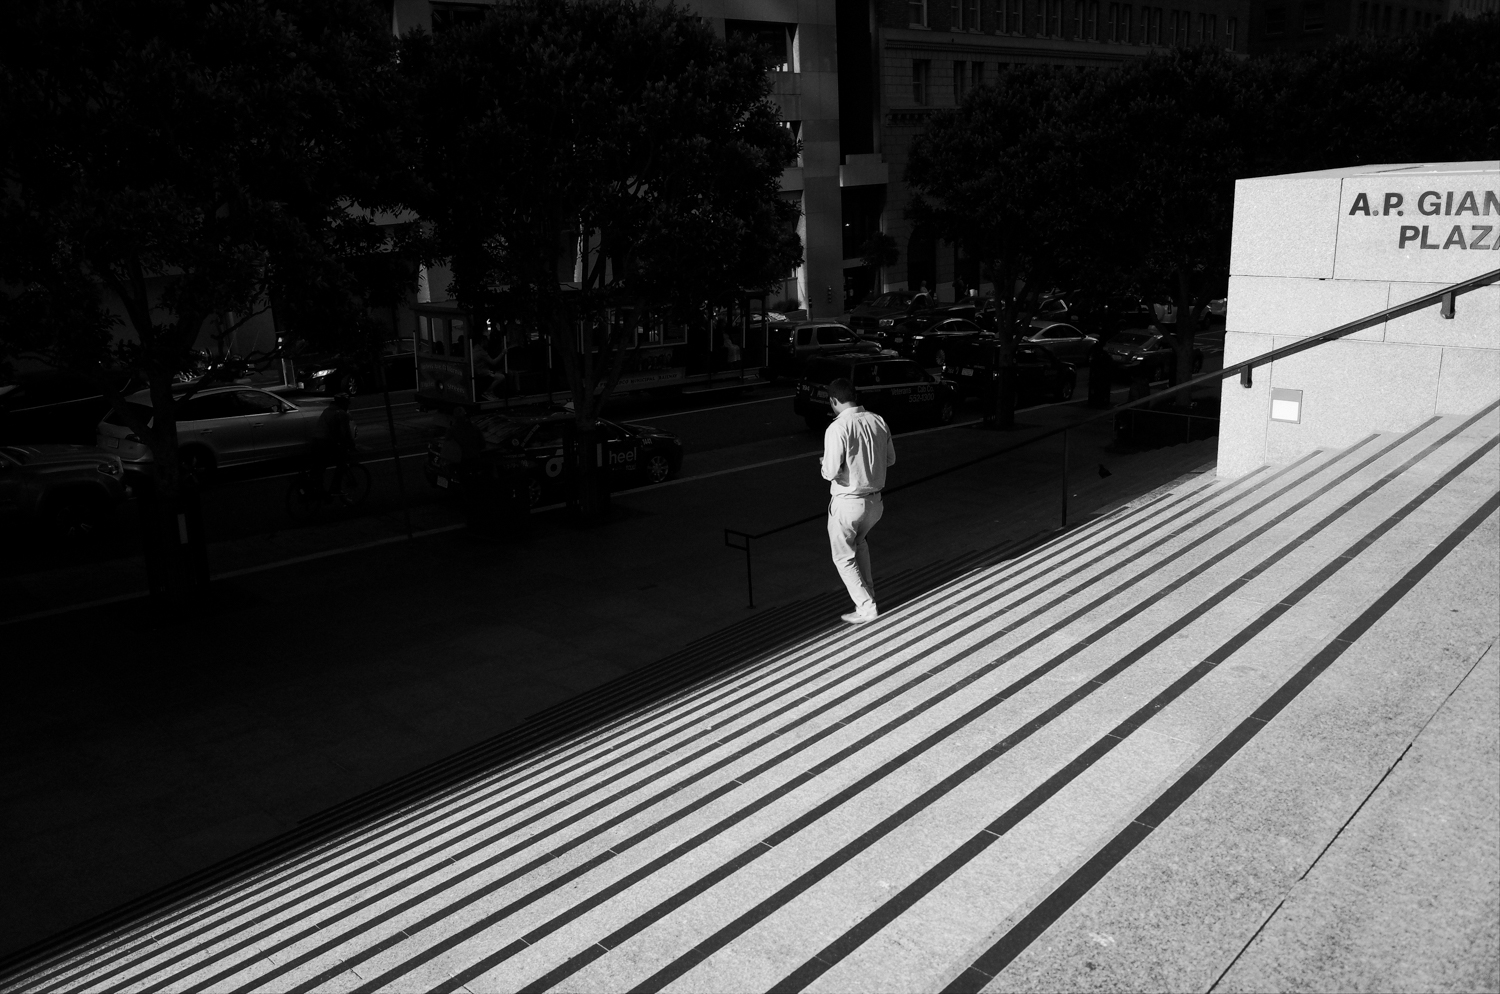 Henry Huynh, Street, Street Photographer, Travel Photographer, Travel-41